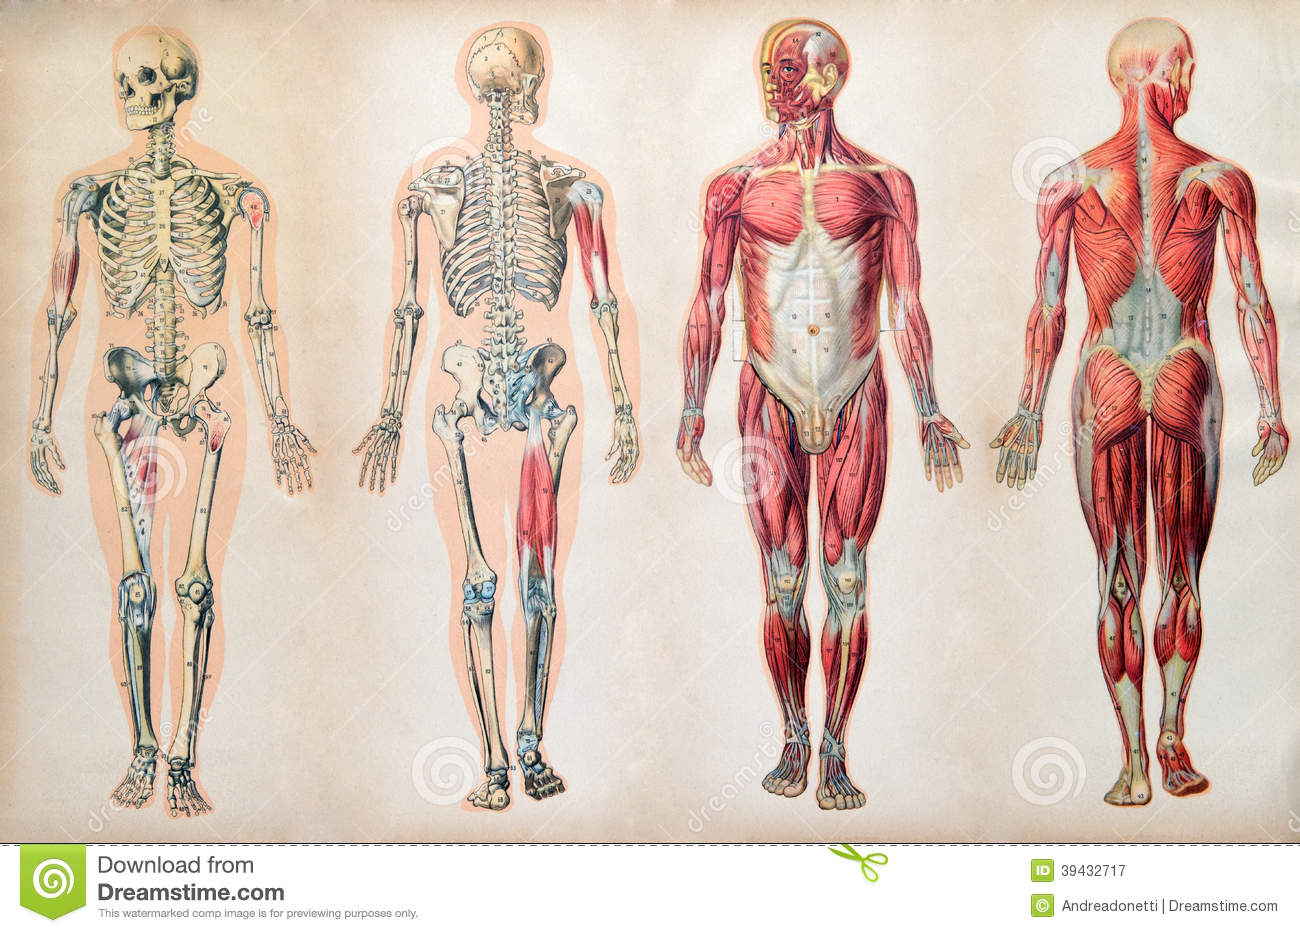 Old Vintage Anatomy Charts Of The Human Body Stock Image - Image of ...